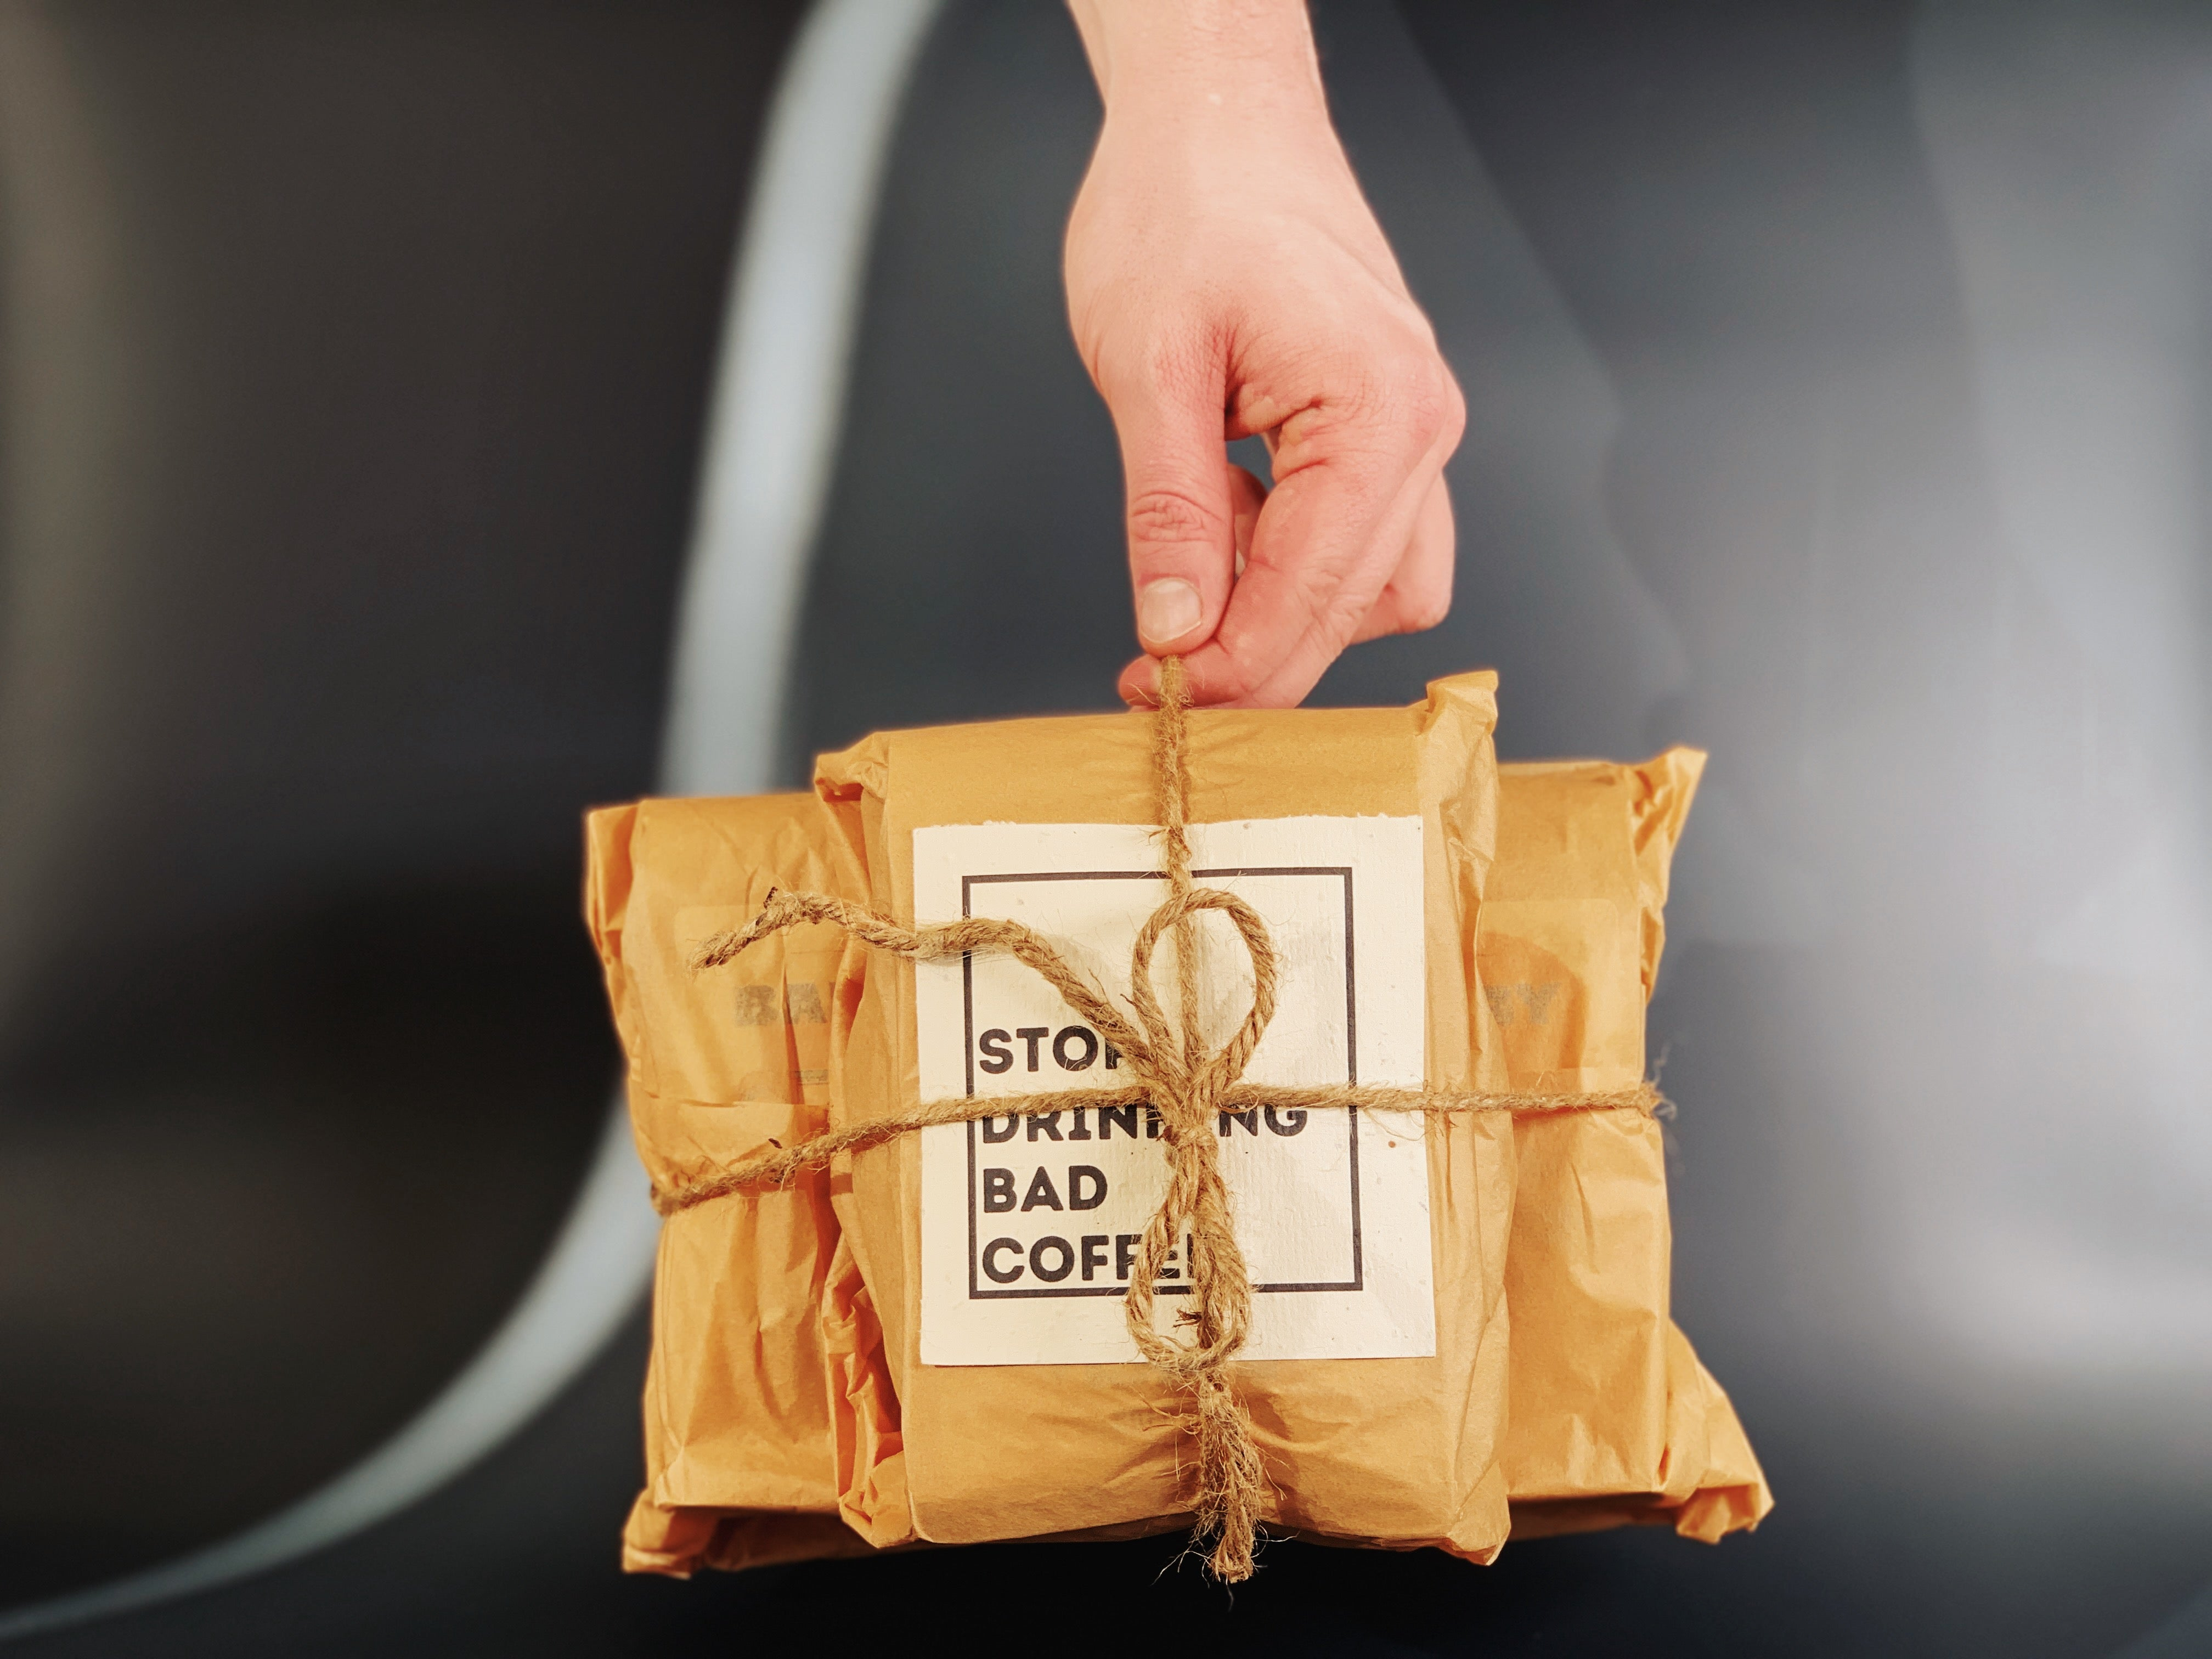 Gold Door Coffee zero waste canadian coffee subscription menage a trois 3 pack gift box held by hand